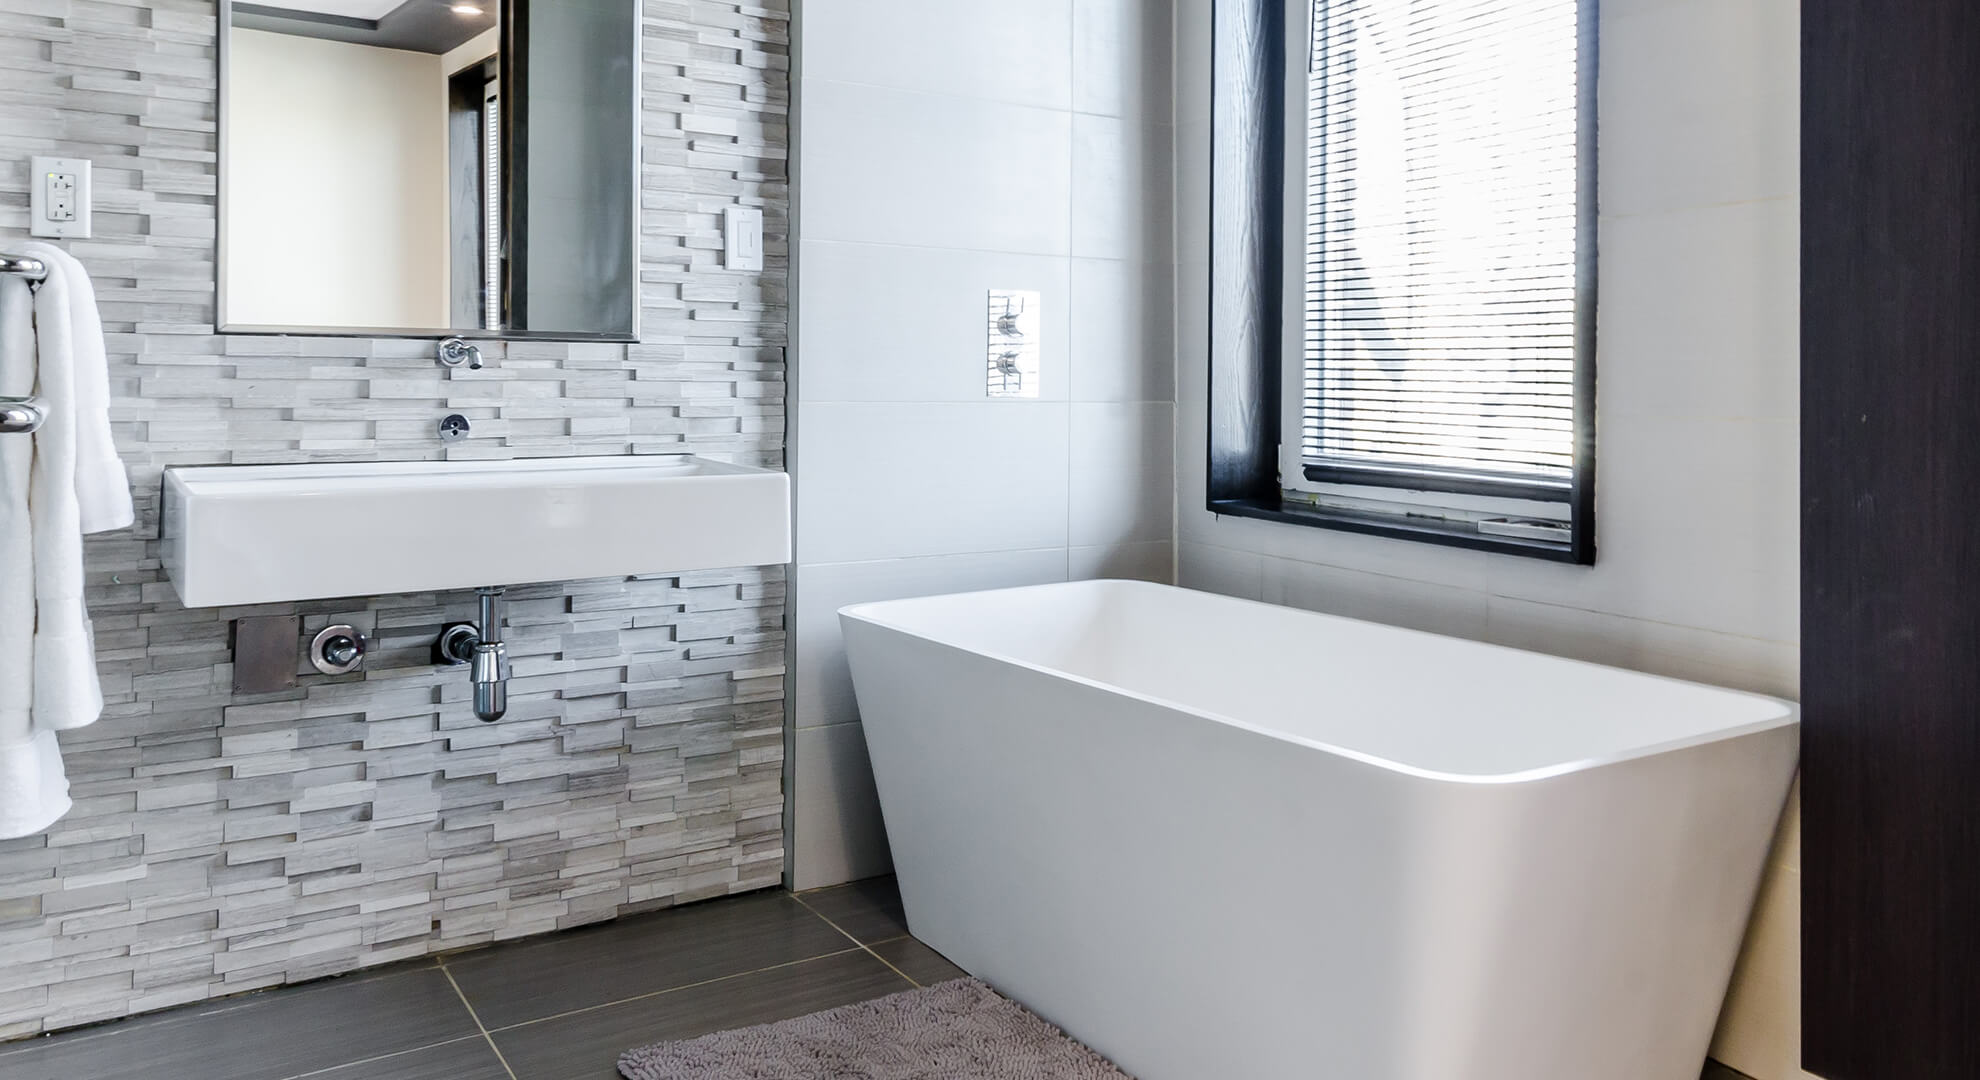 bathtub and bathroom tiles